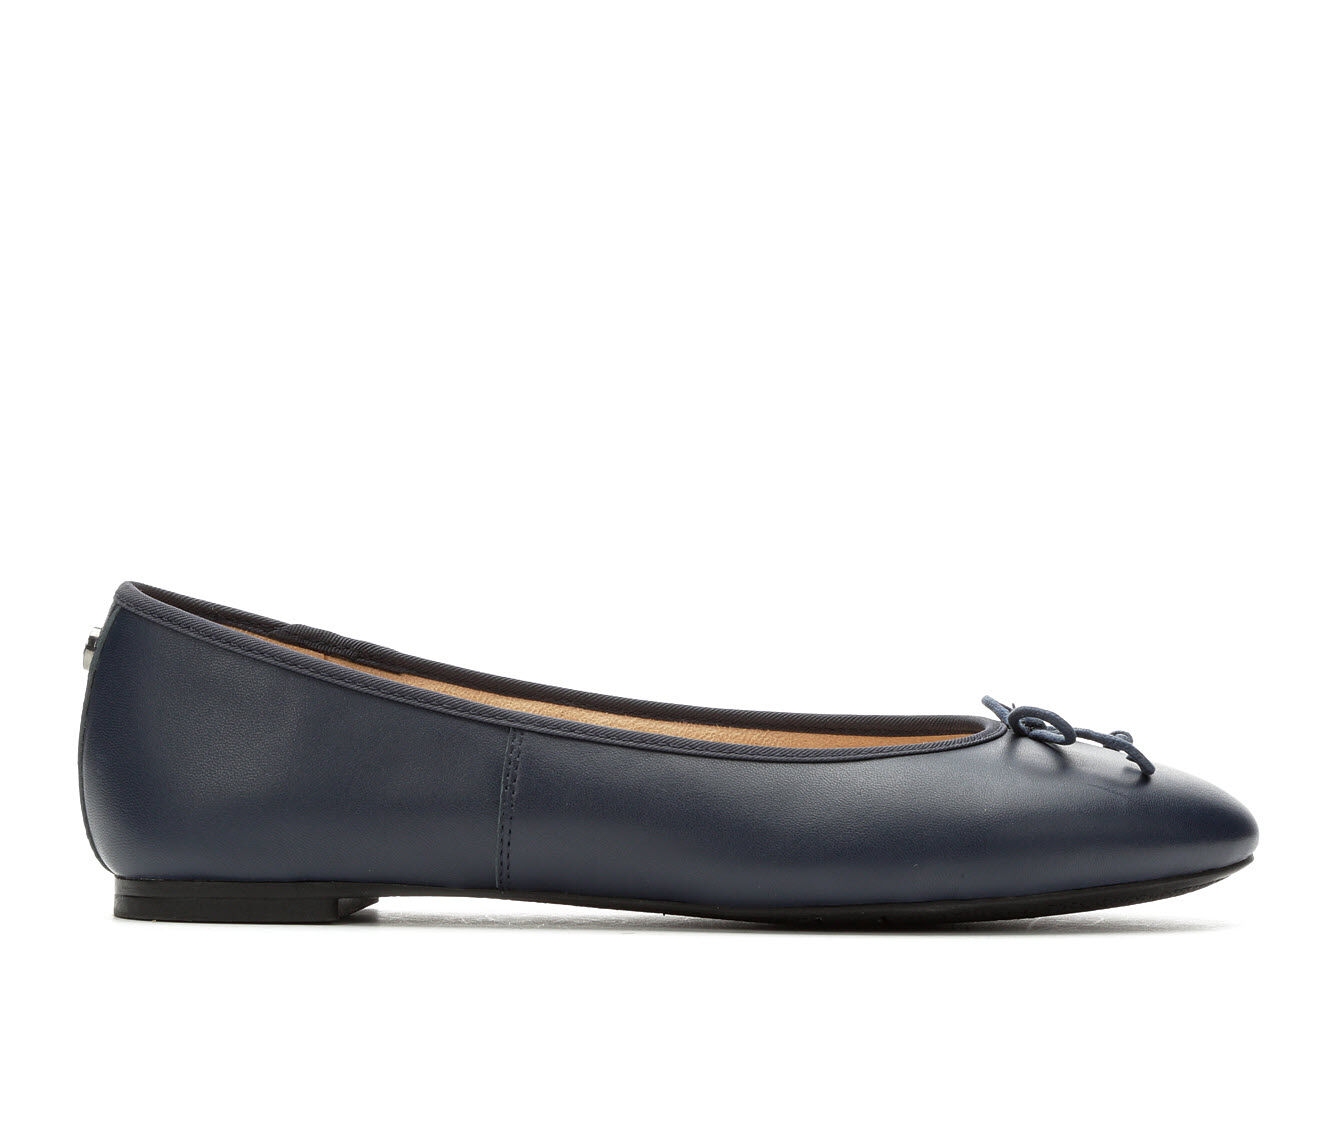 quality guaranteed Women's Circus by Sam Edelman Charlotte Flats Elegant Navy